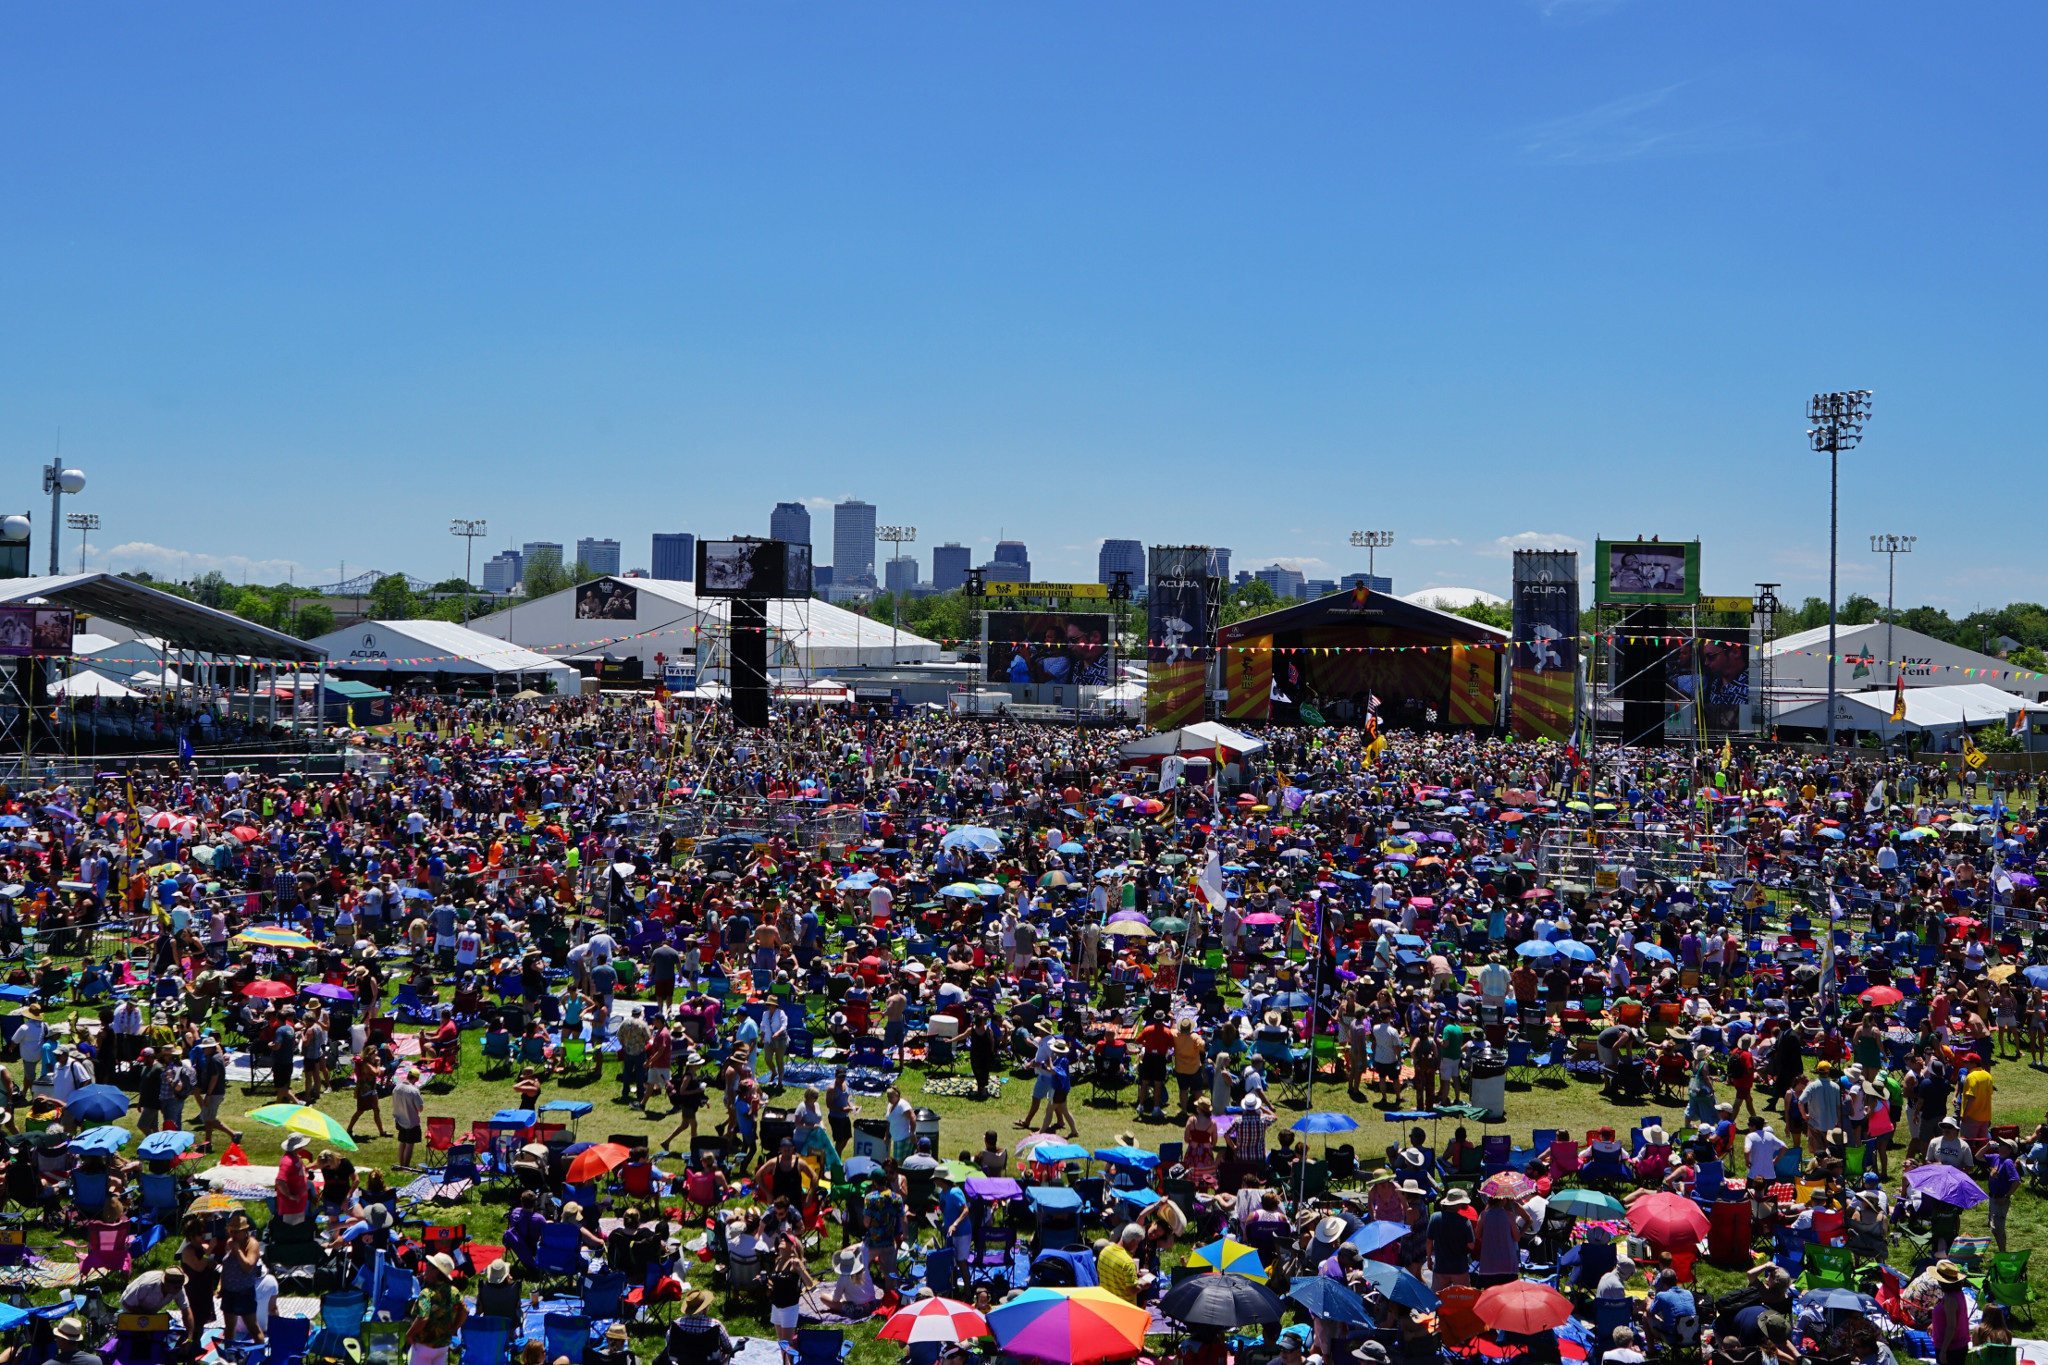 The Acura Stage at Jazz Fest always draws a crowd. (Photo: Paul Broussard)